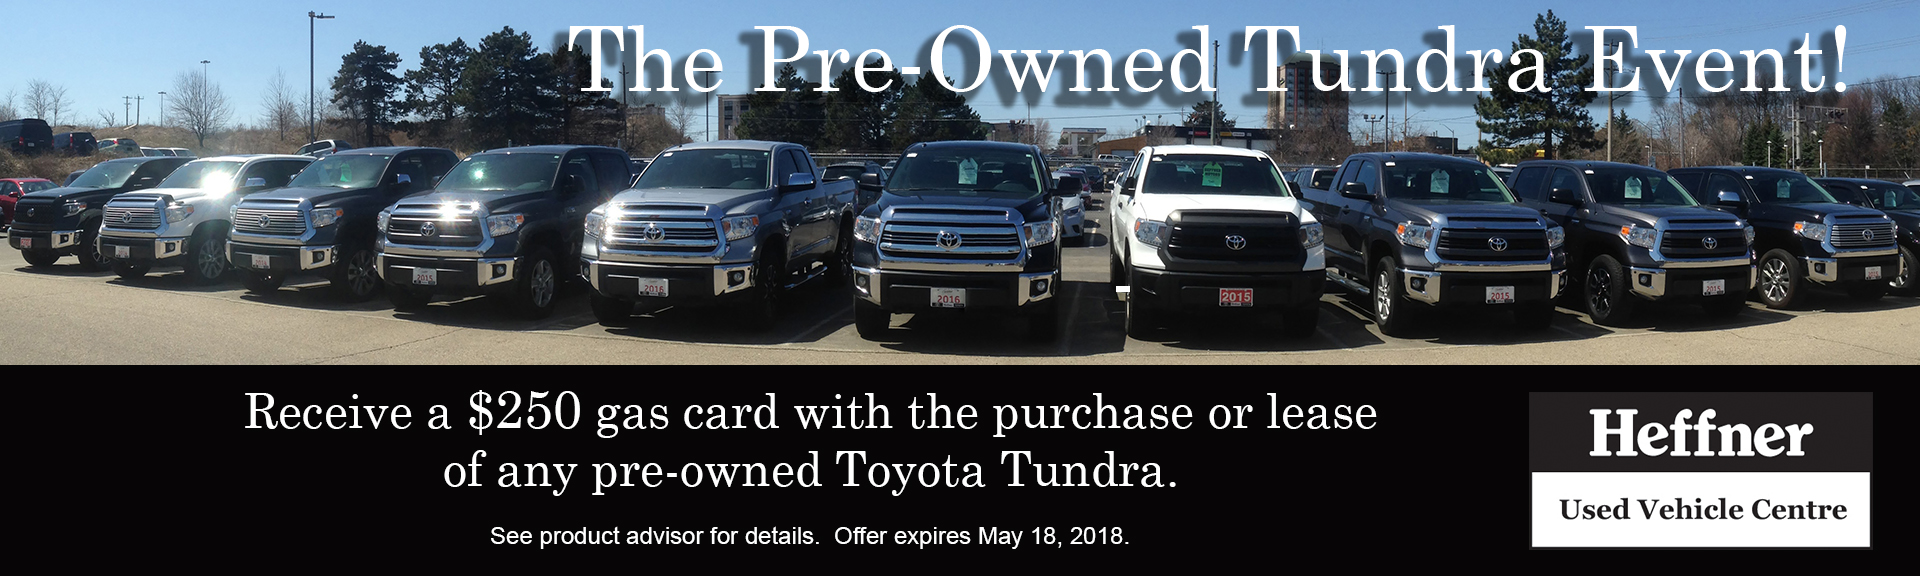 Get a $250 Gas Card on any pre-owned purchase or lease of a Toyota Tundra